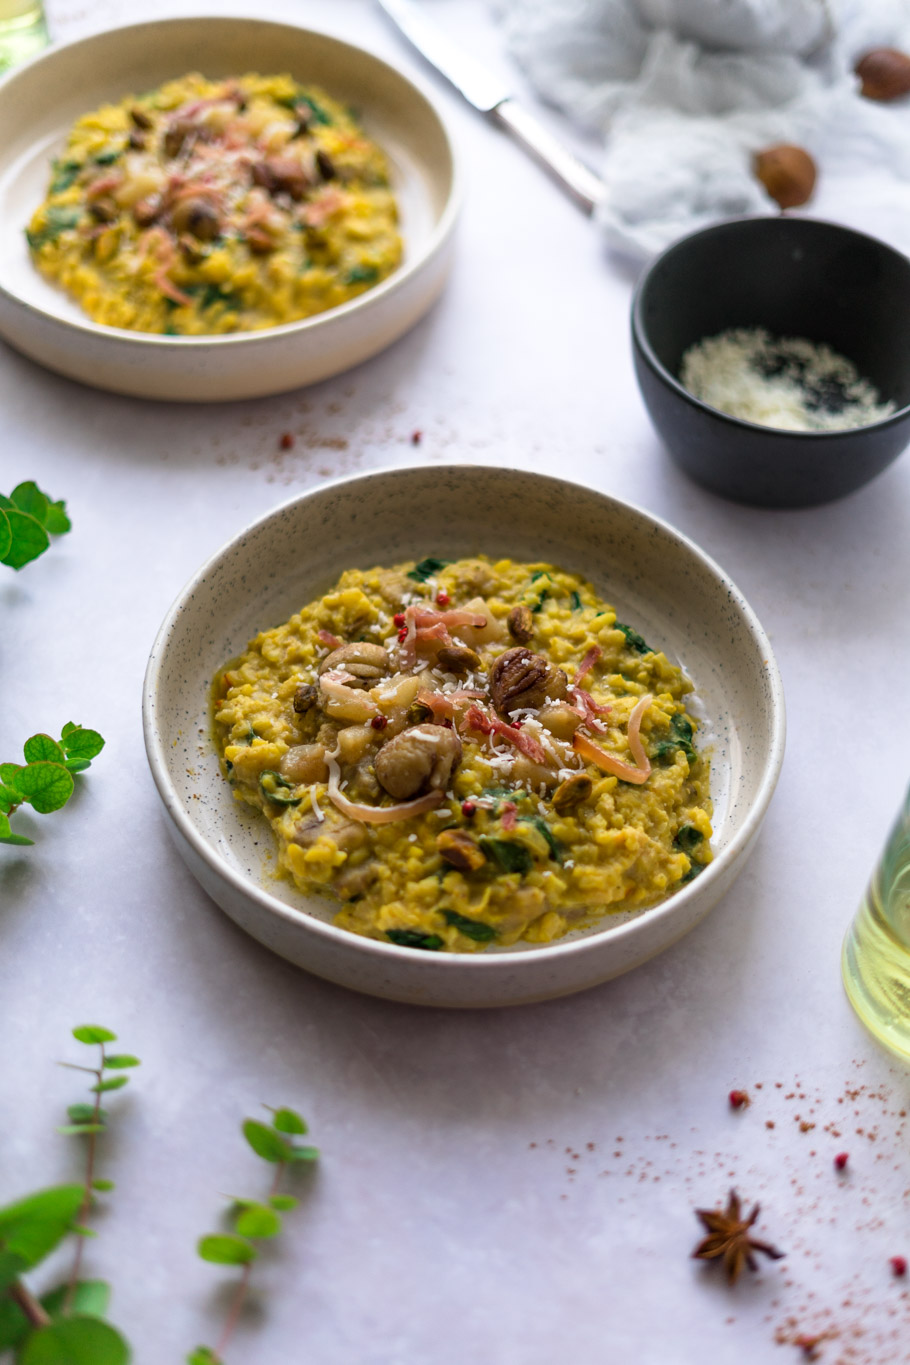 Soulfood Gewürz-Risotto